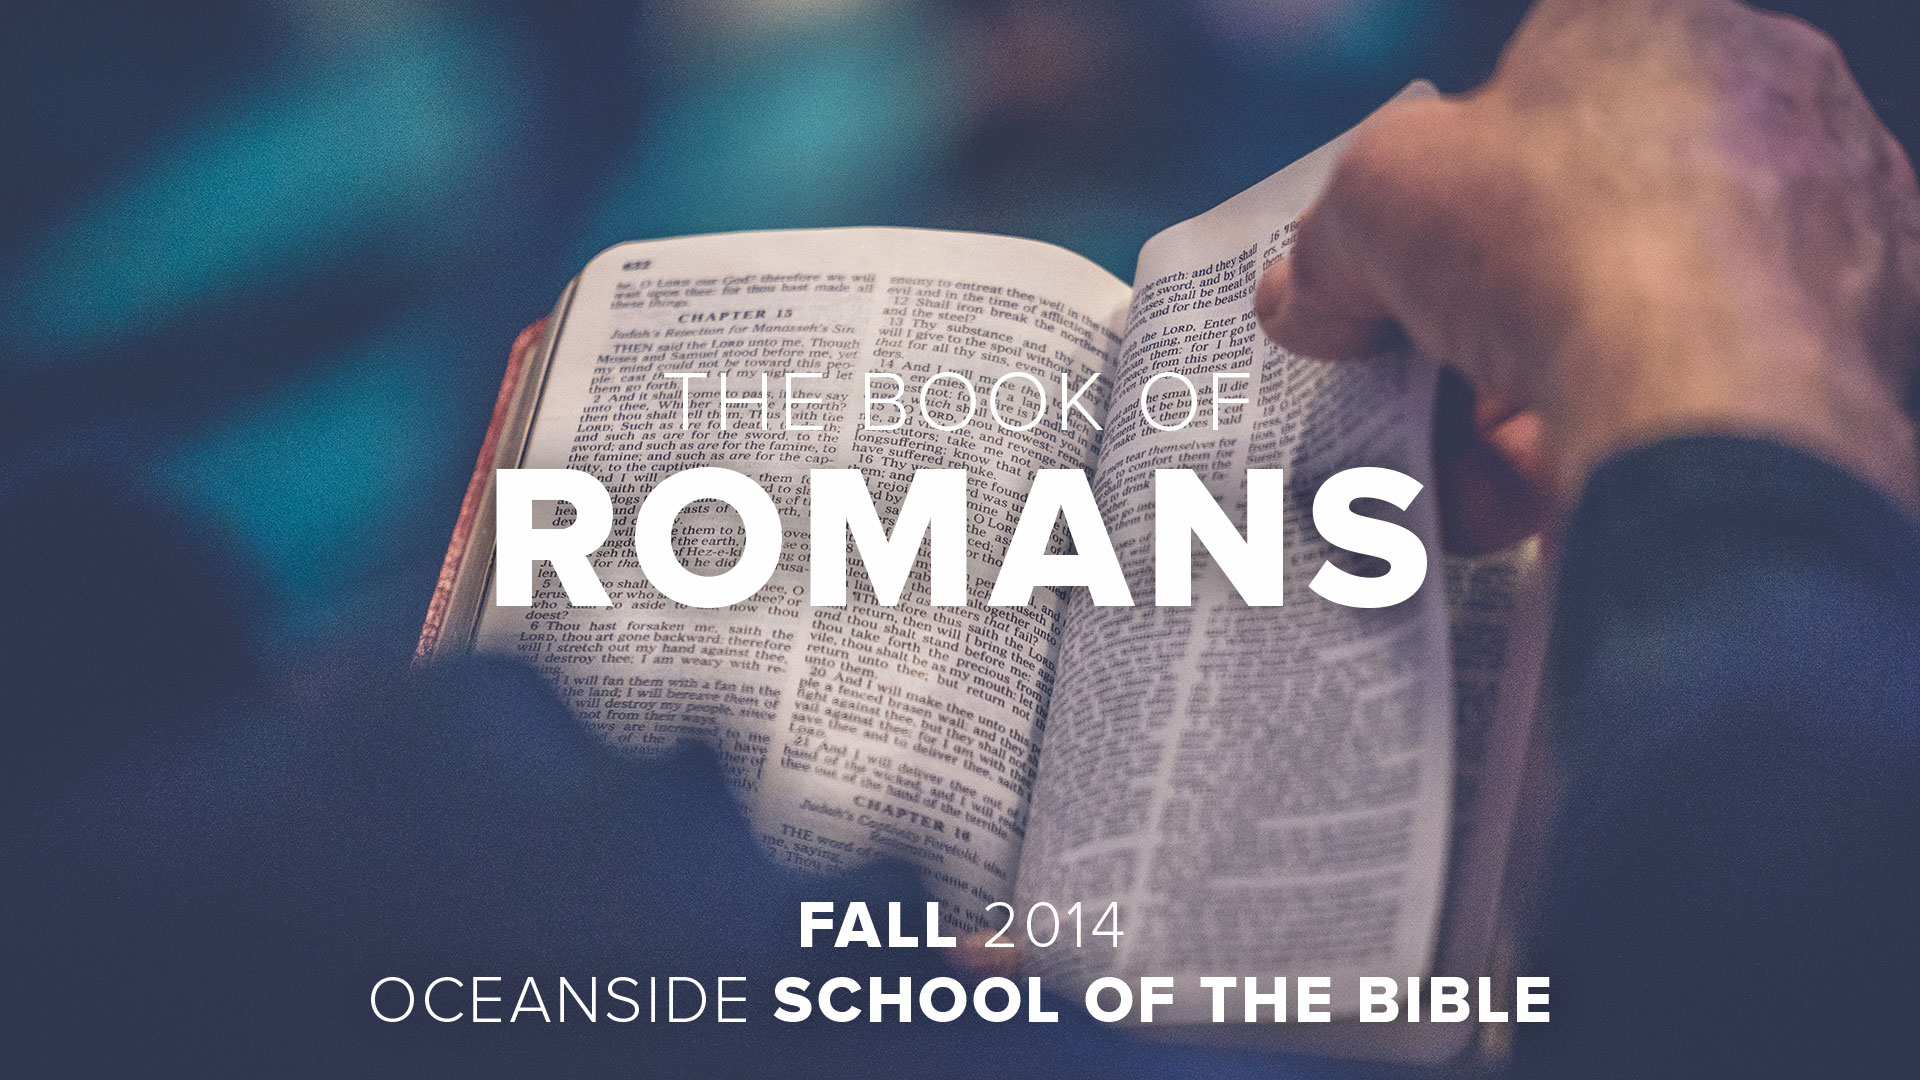 Session 6 - Romans